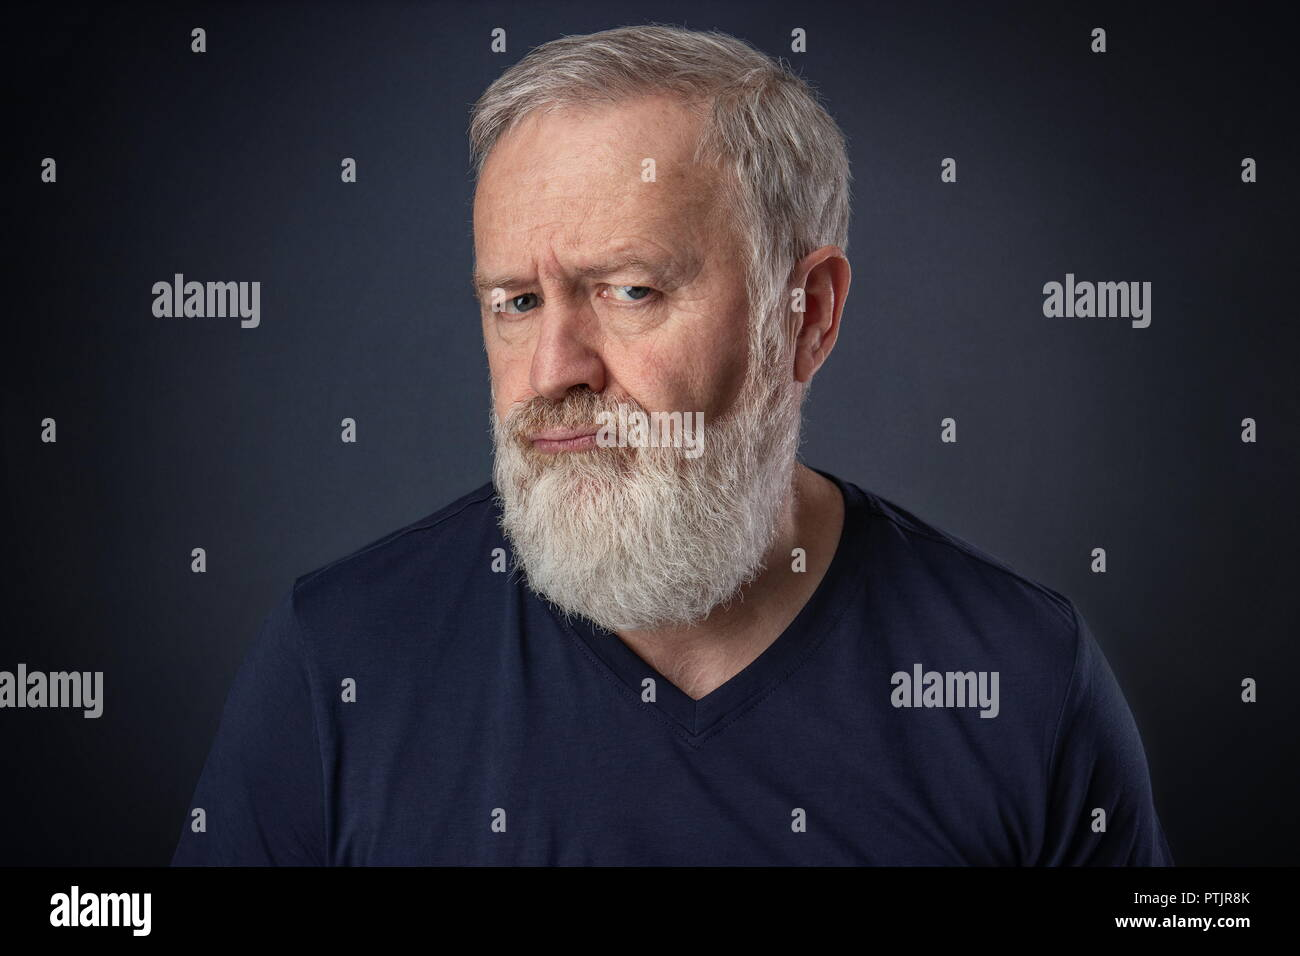 Senior portrait with beard with a mocking and angry mimic - Stock Image